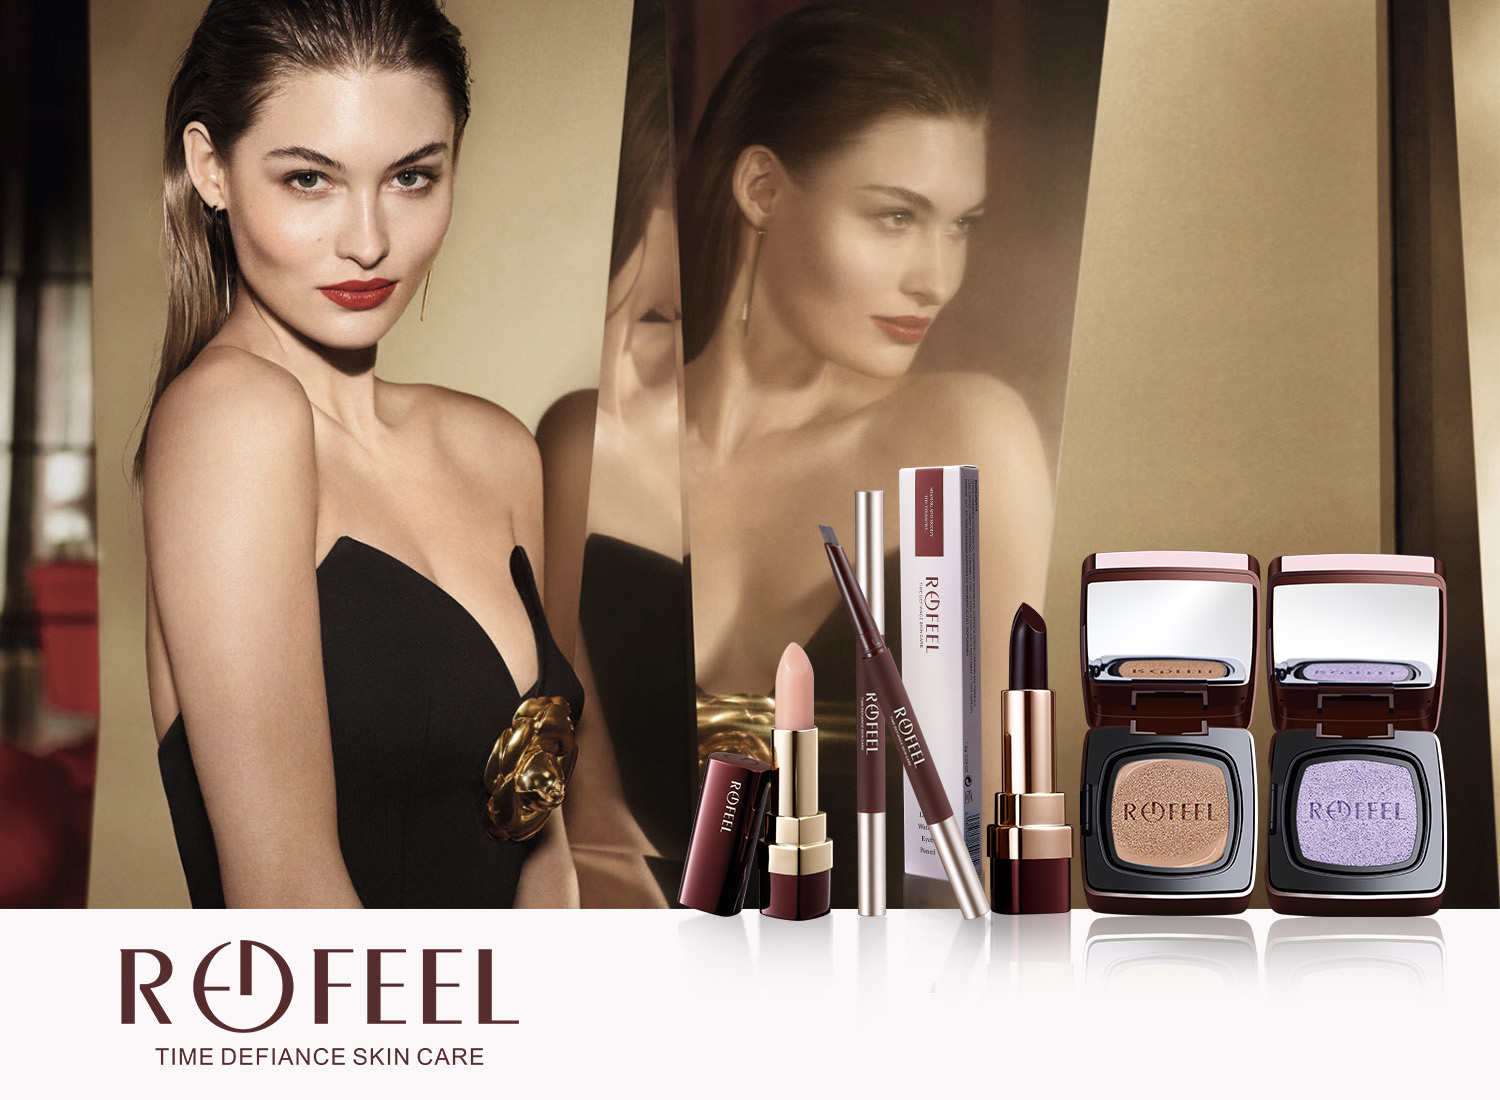 Redfeel-lipstick-spa-beauty-brand